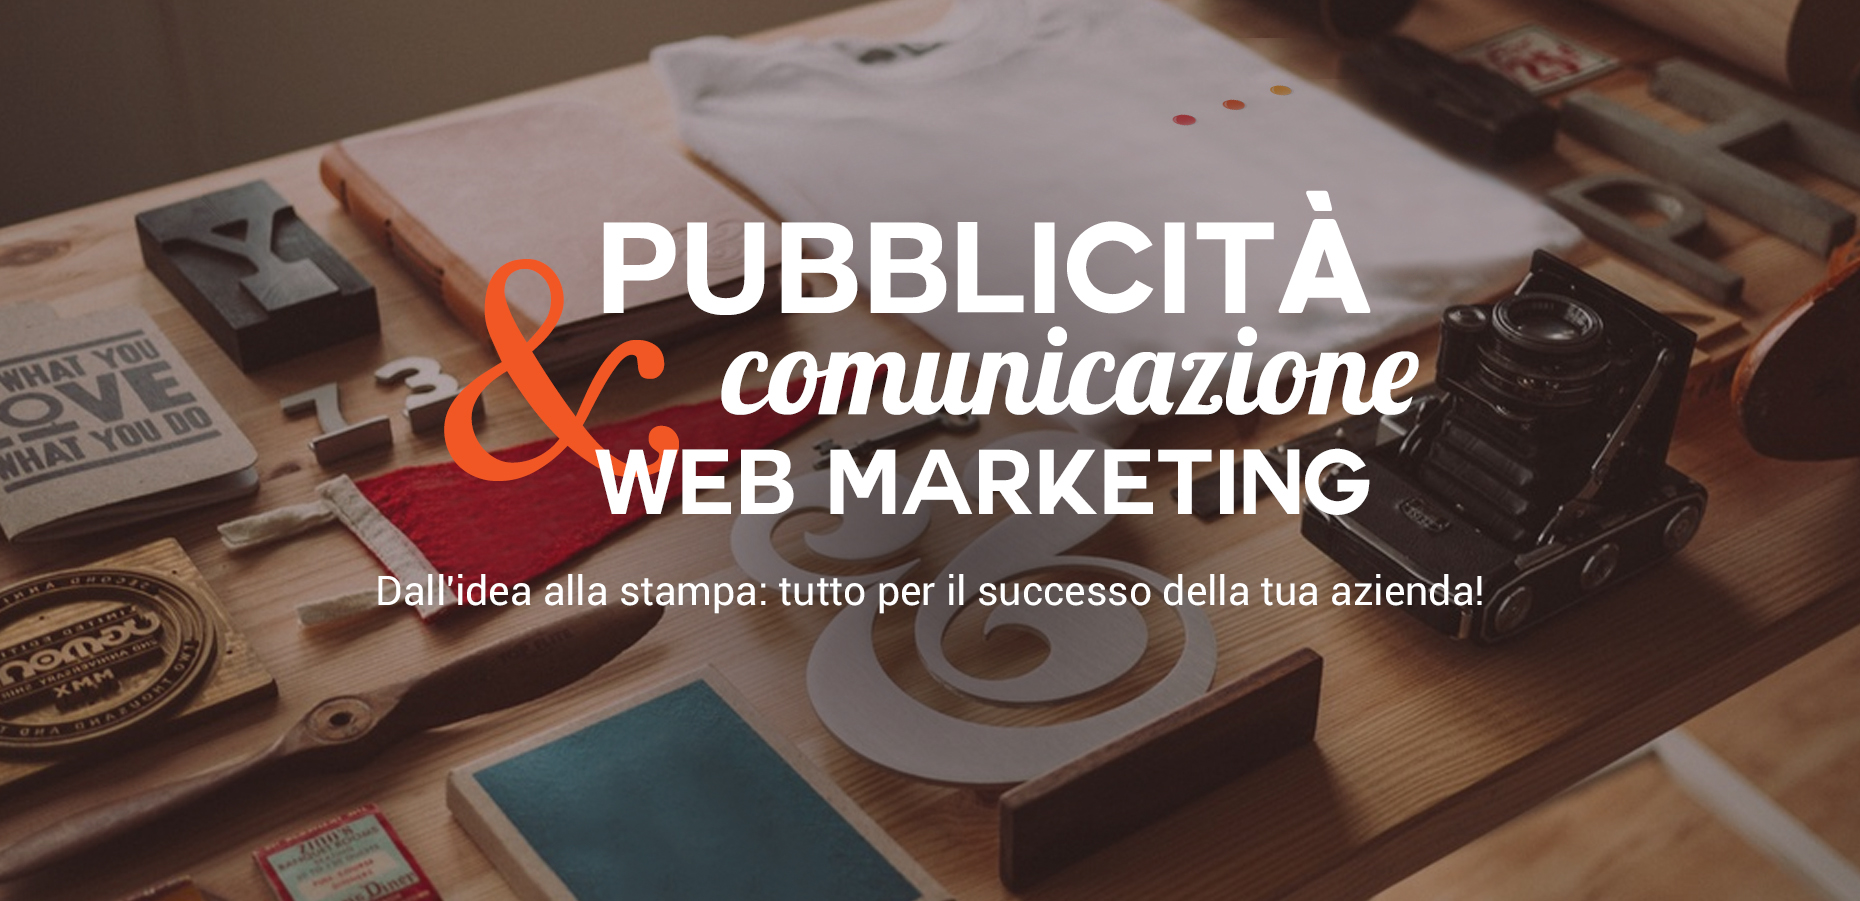 Pubblicità & Web Marketing